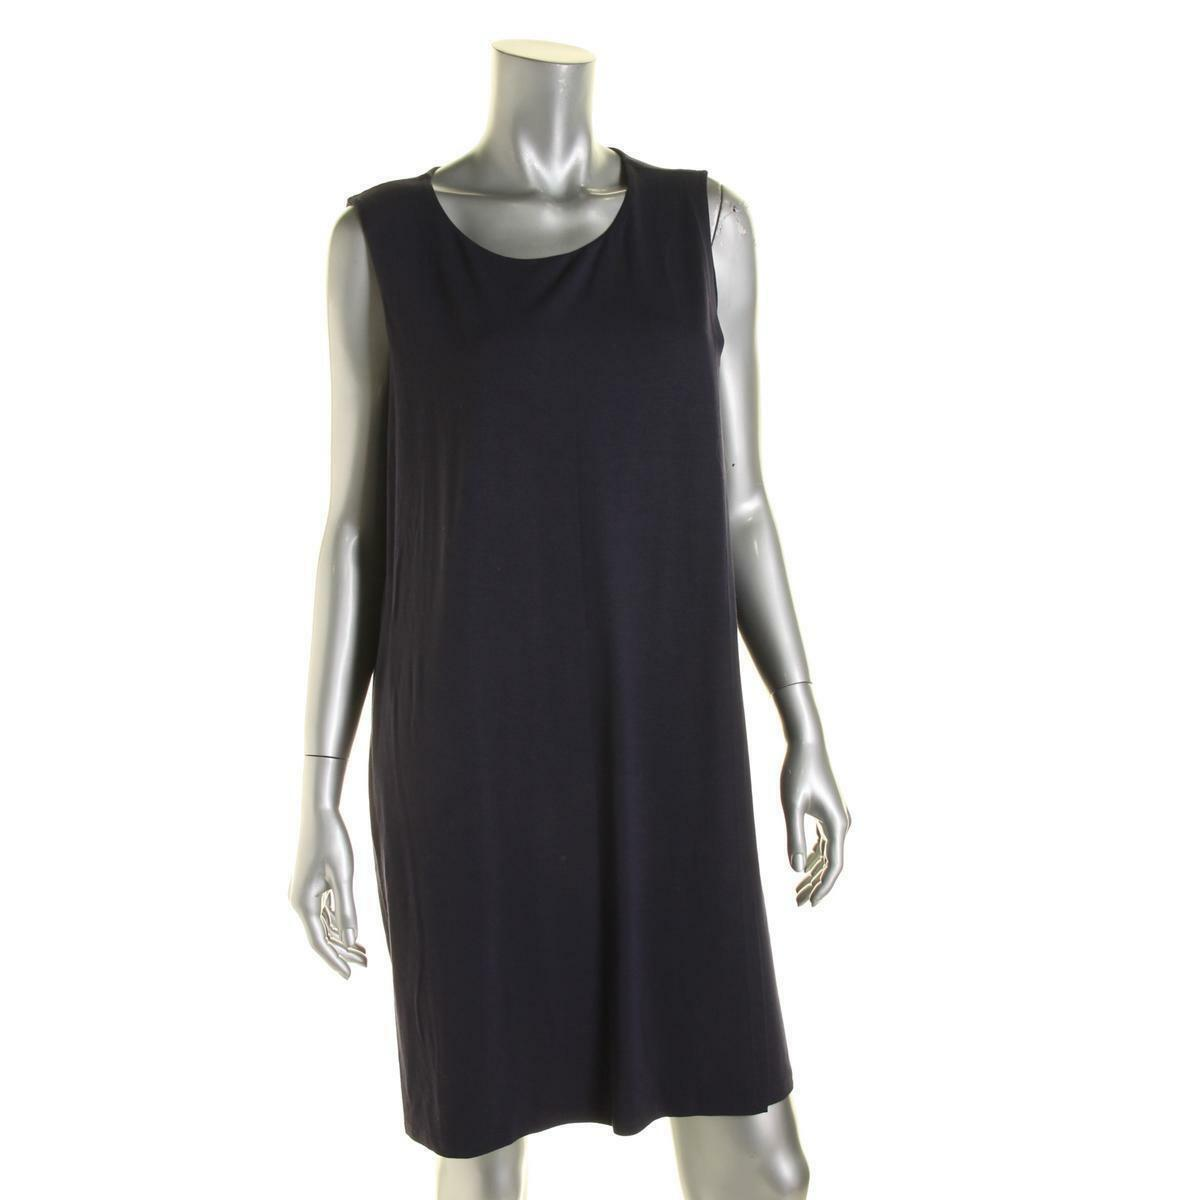 Eileen Fisher Fisher Fisher MIDNIGHT Faux Wrap Dress  Viscose Jersey PP  178 342128